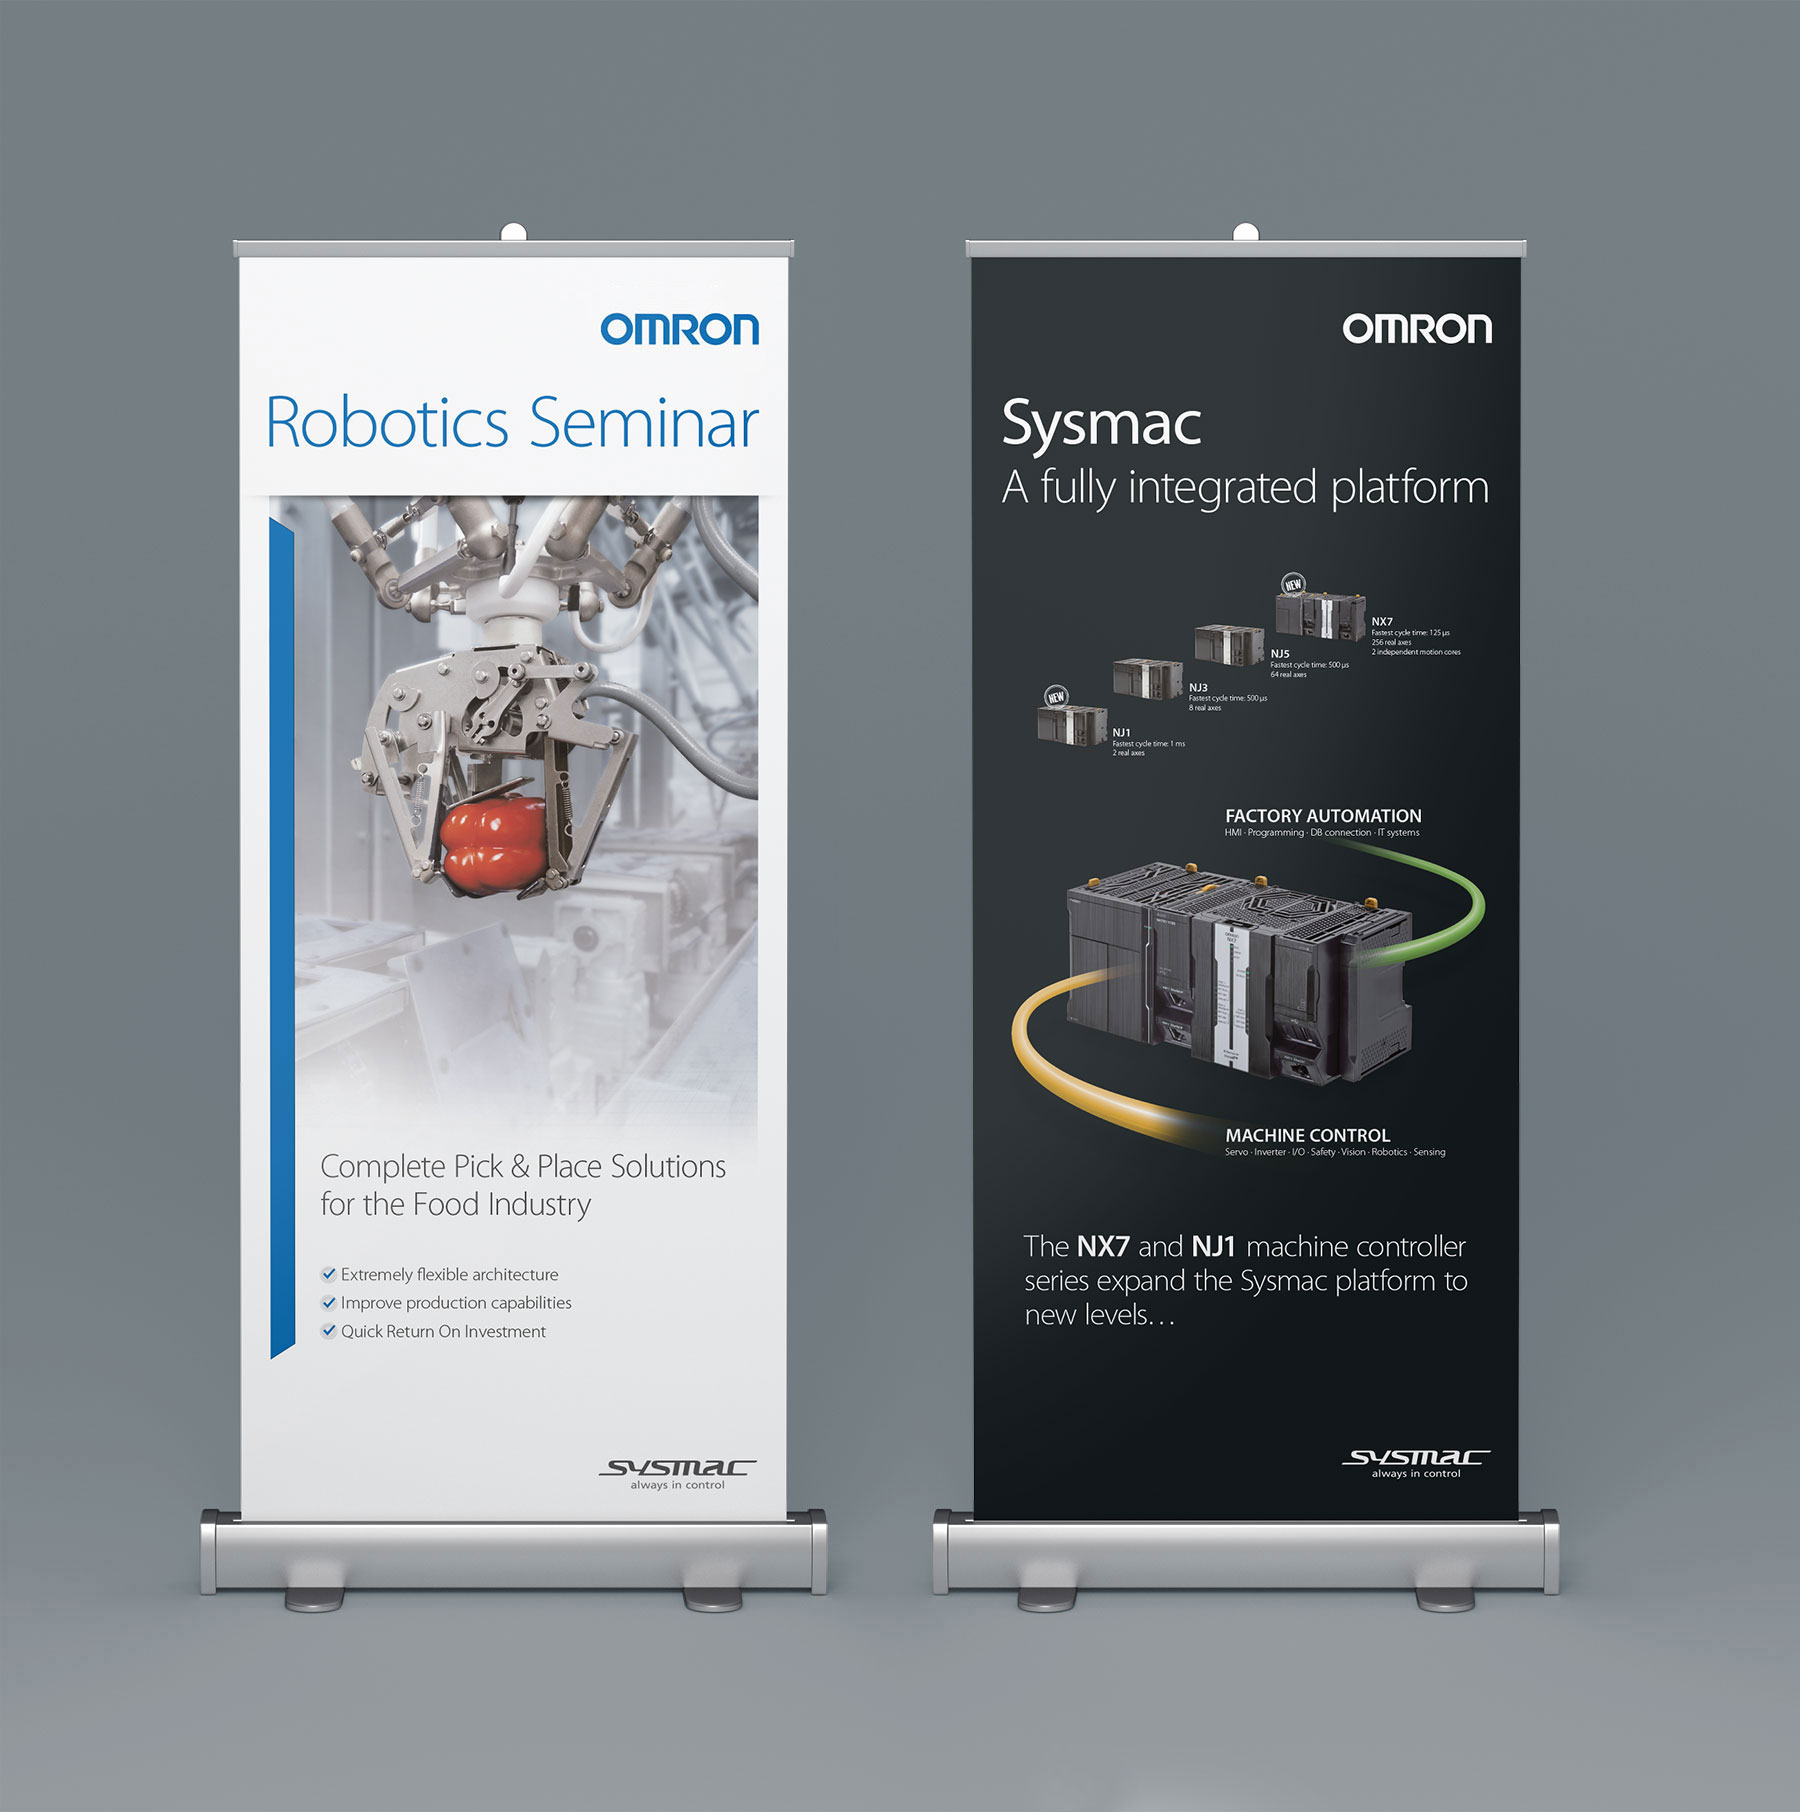 roll-up-omron